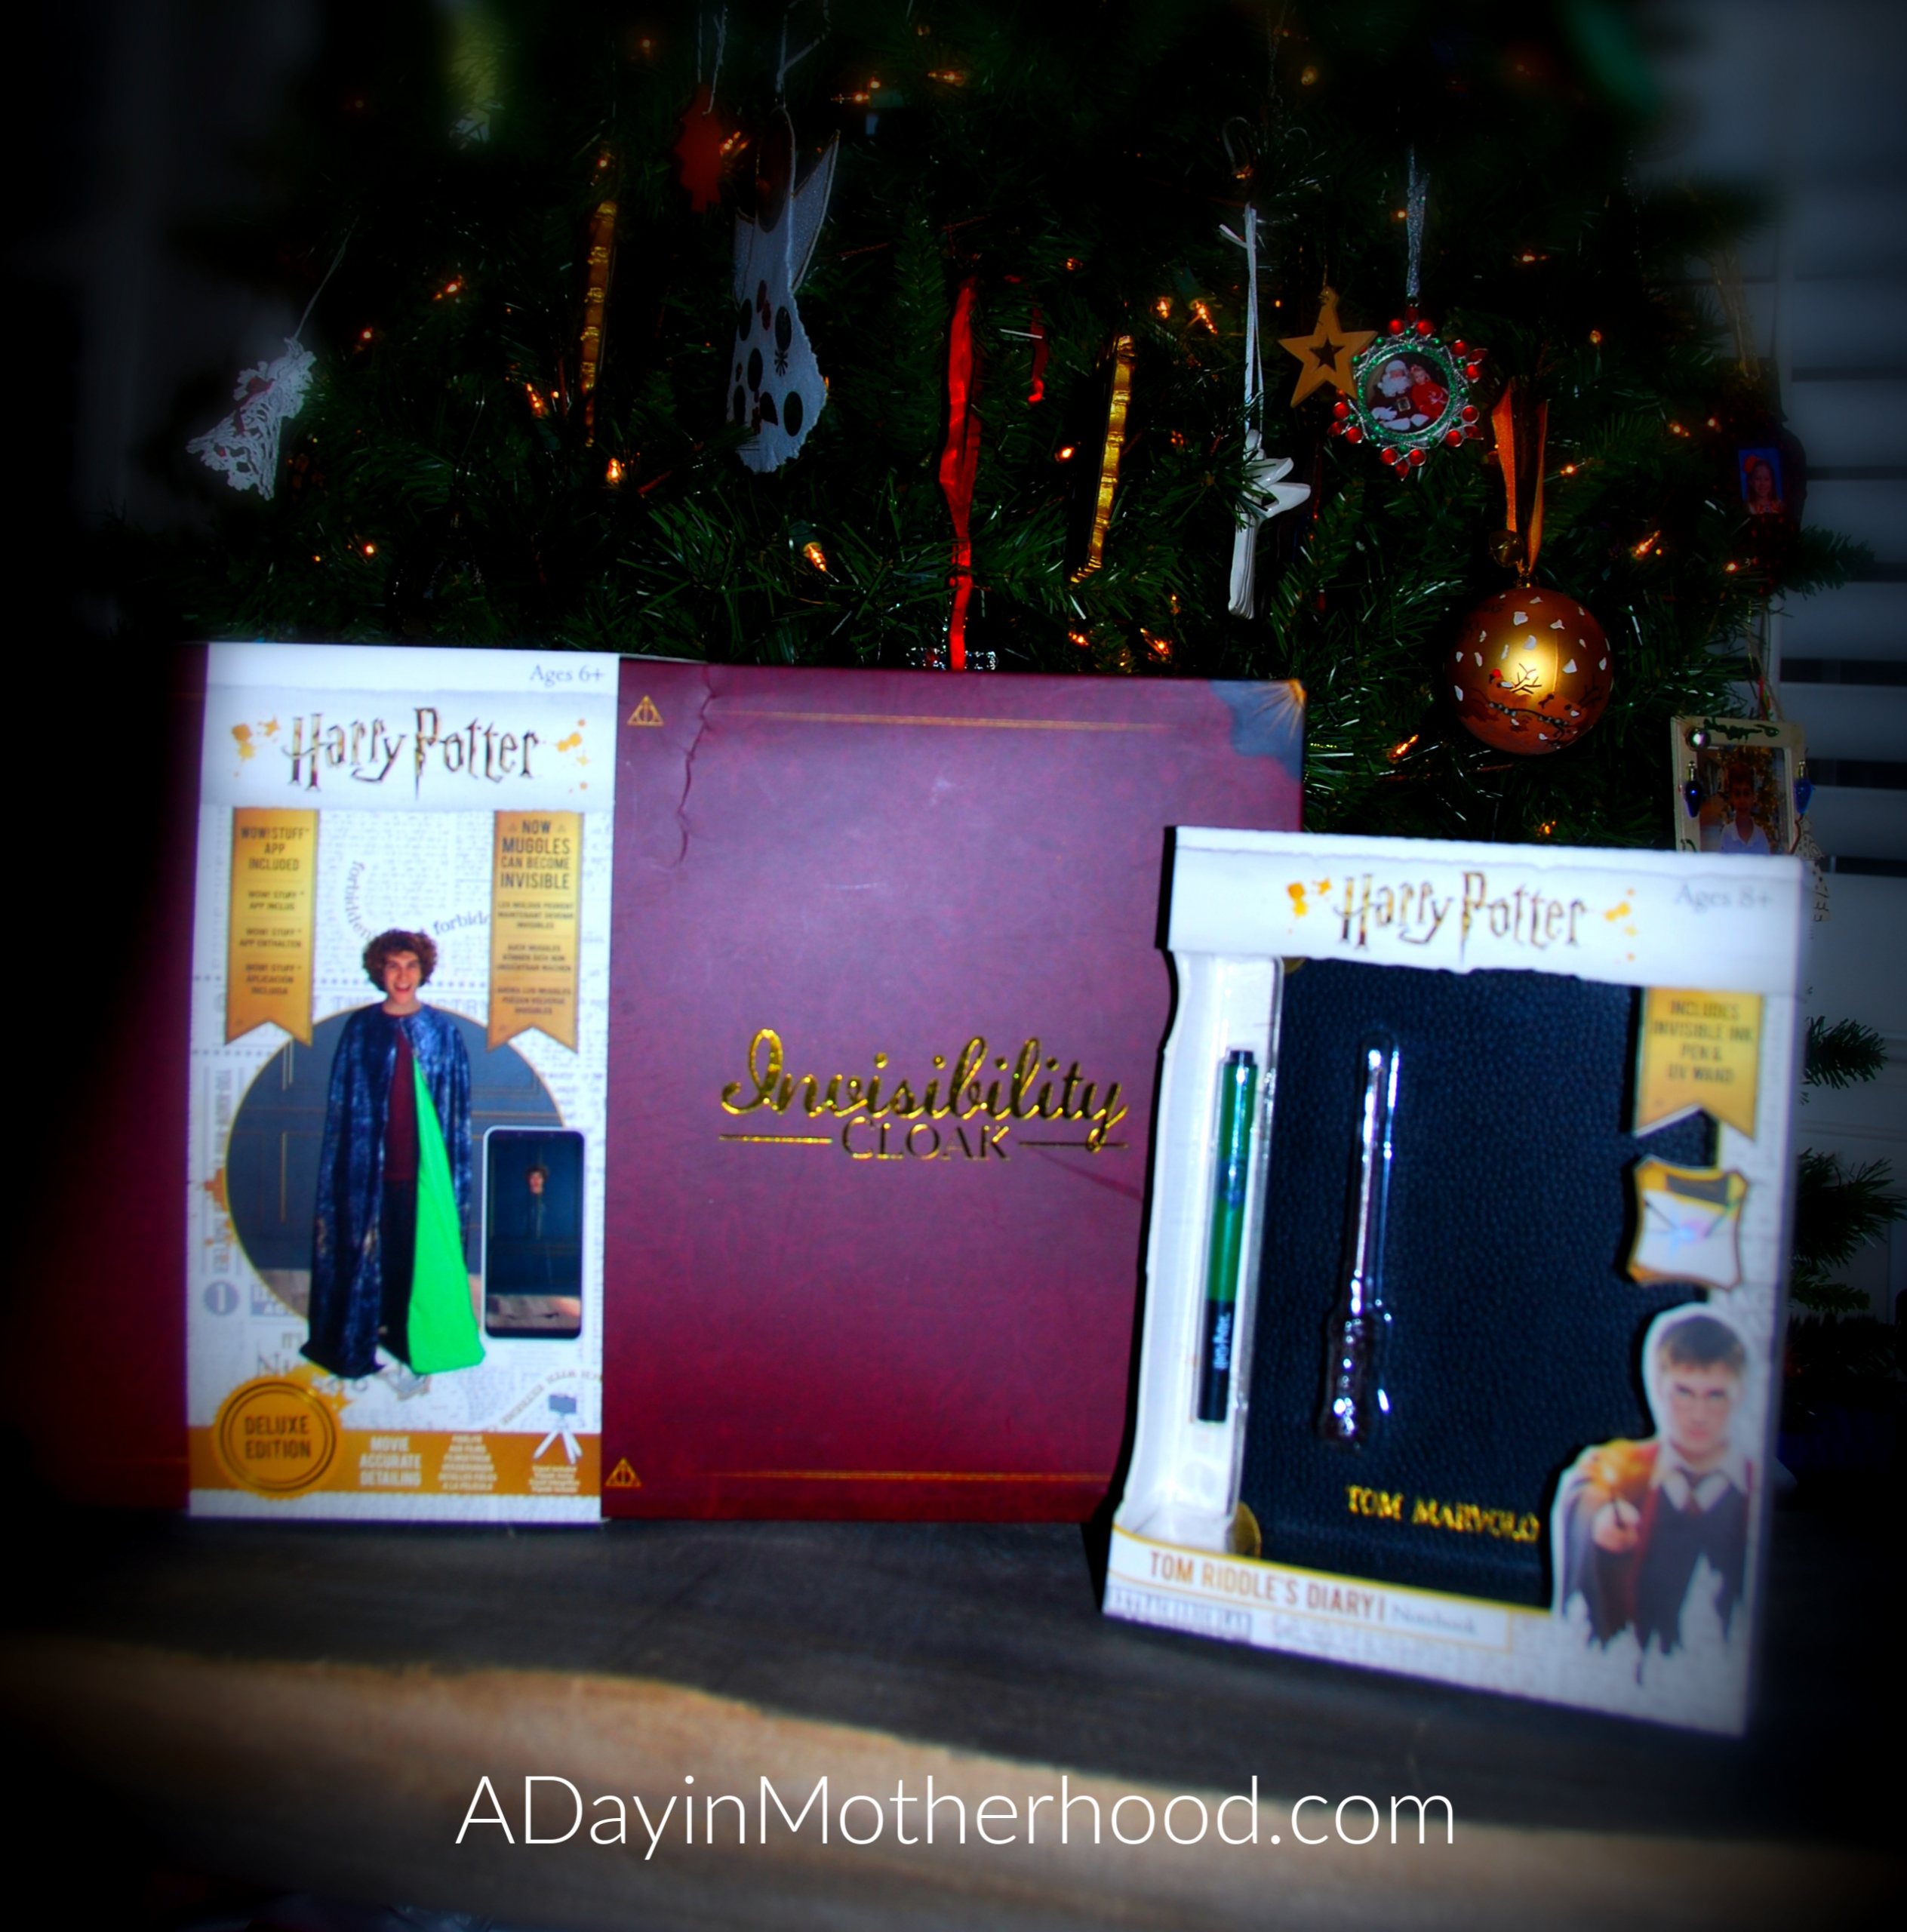 WOW! Stuff for The Wizarding World-photo of products by tree on ADayinMotherhood.com